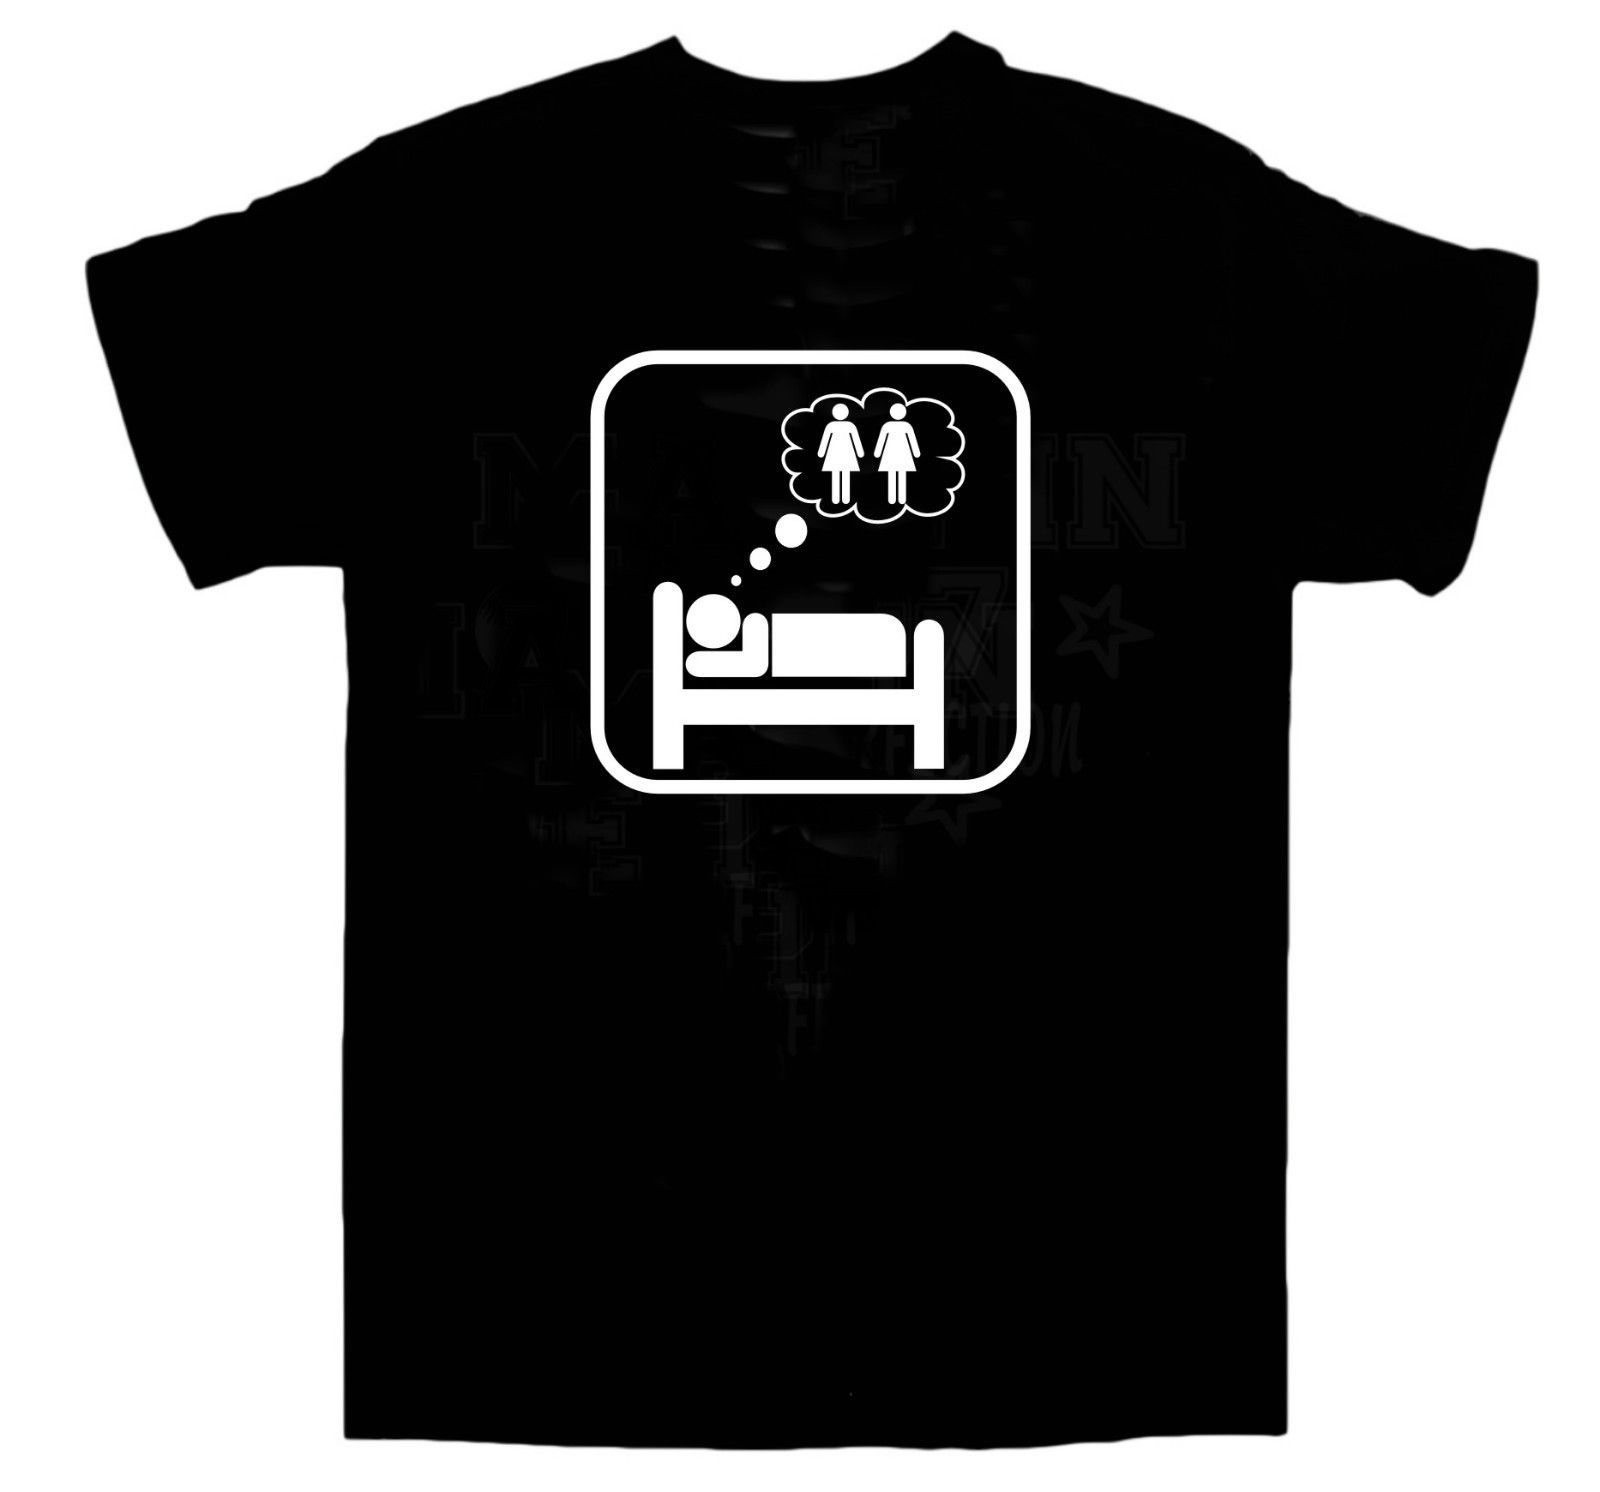 Dreaming Of 2 Girls T-shirt / Sex / Threesome / Orgy / Wedding / BBQ / All Sizes Tricolor top tee image